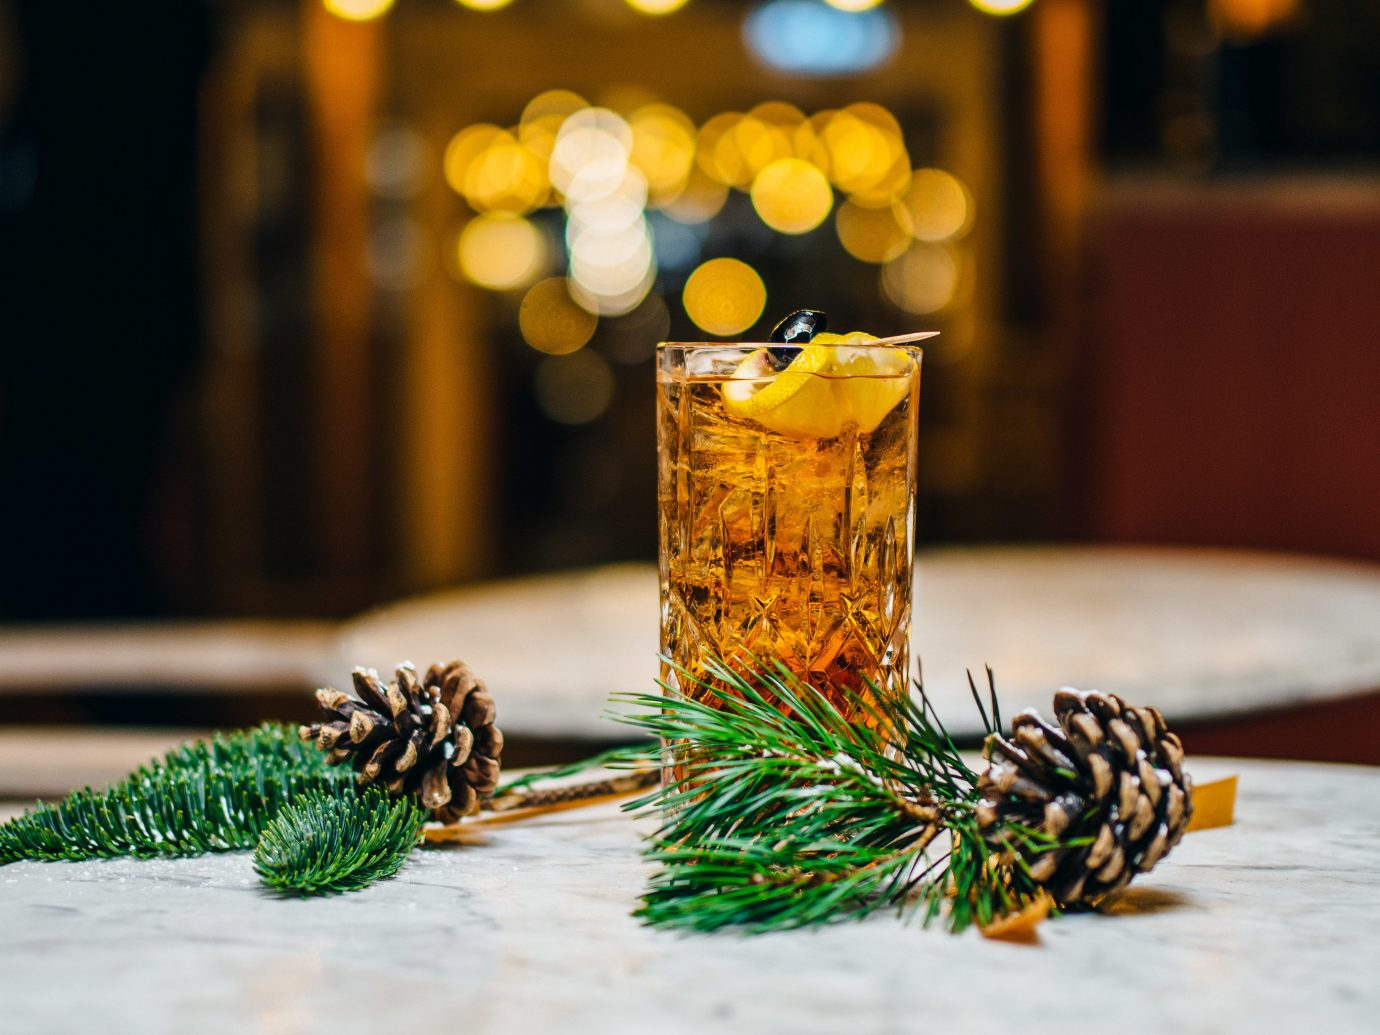 Food + Drink Trip Ideas table indoor Drink centrepiece tree still life photography decorated